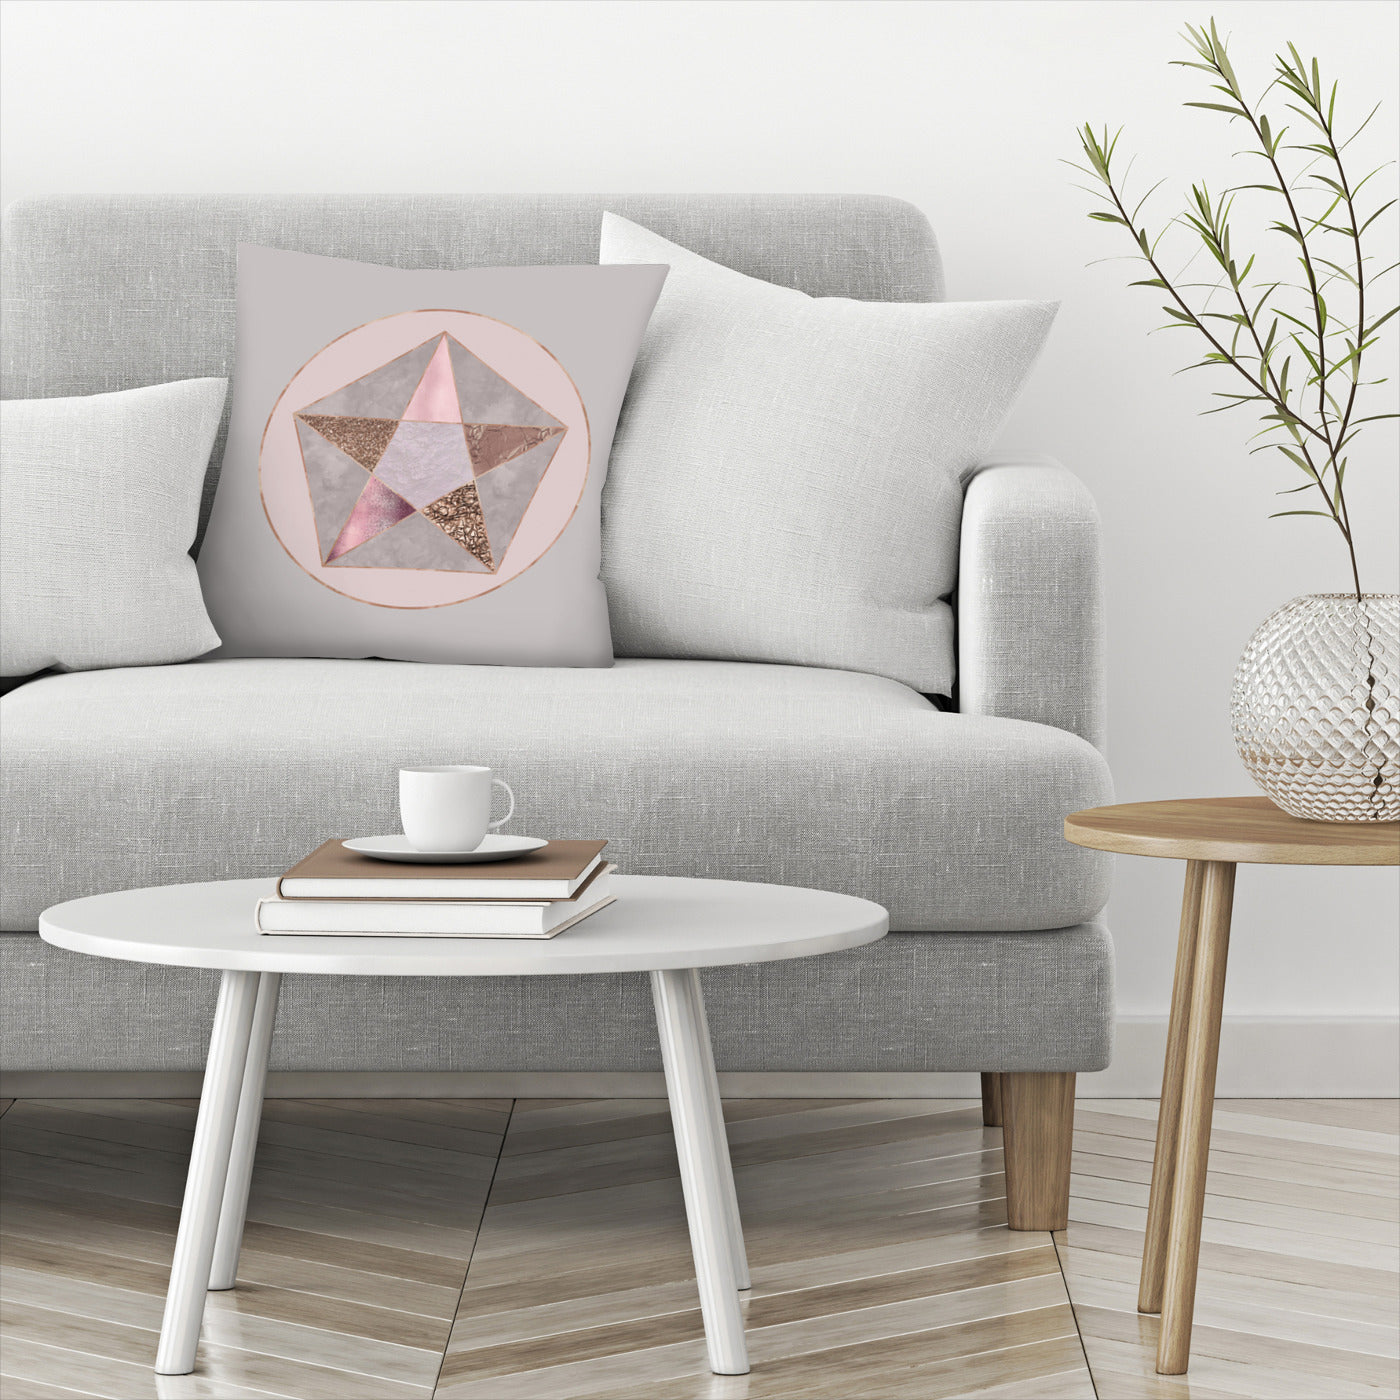 Rose Gold Geometry by Lebens Art Decorative Pillow - Decorative Pillow - Americanflat